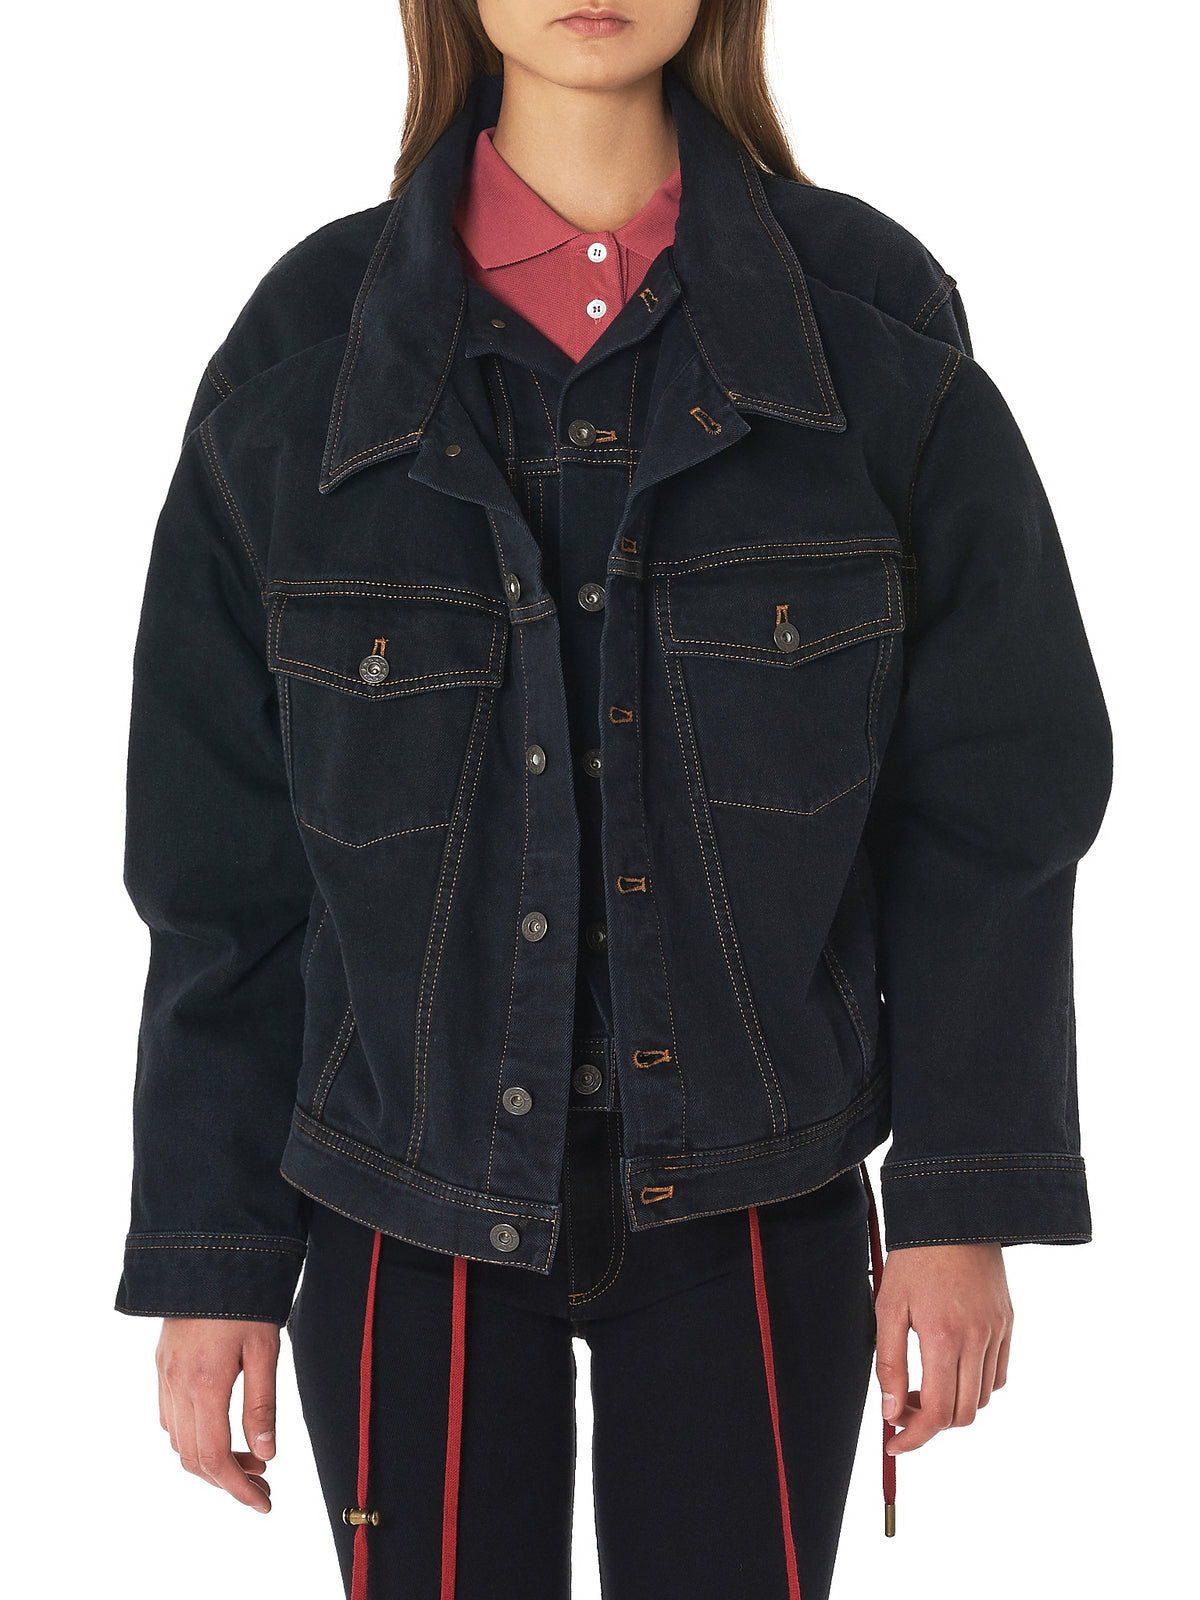 Tiered Denim Blouson (WJACK3-S14-F30-S14-BLACK)